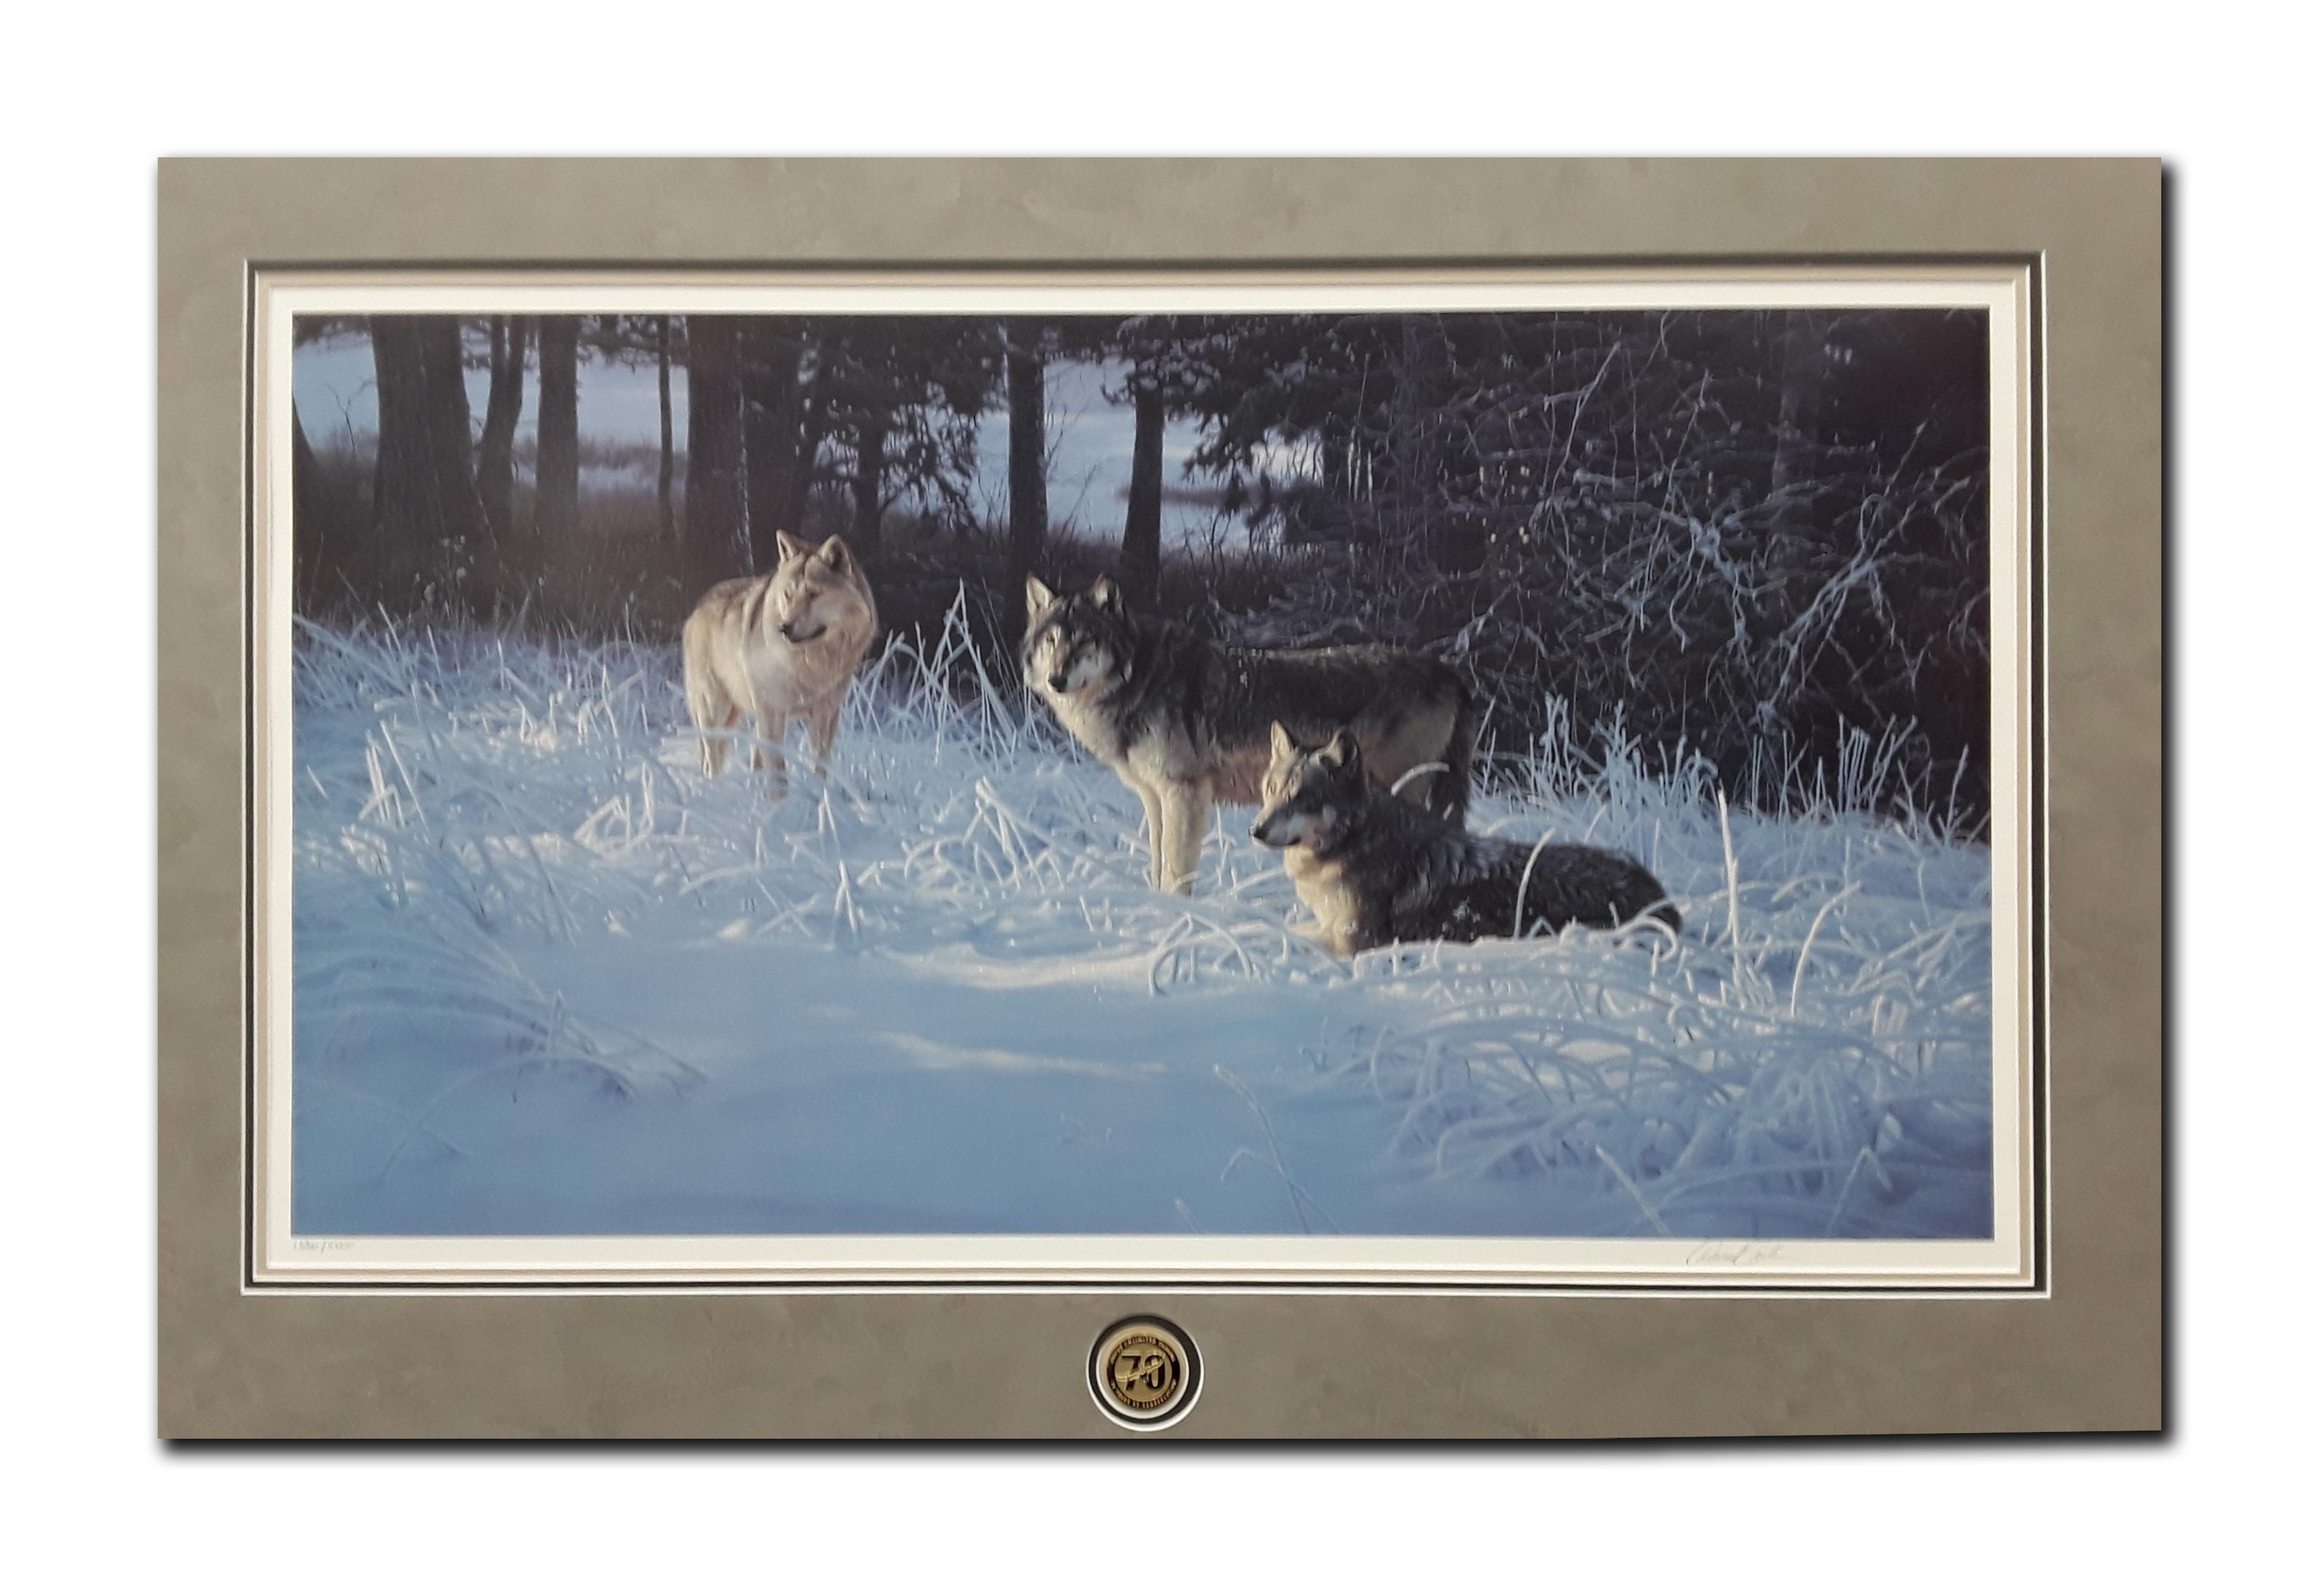 """Daniel Smith's """"Frost and Fire"""" Limited Edition Matted Print"""